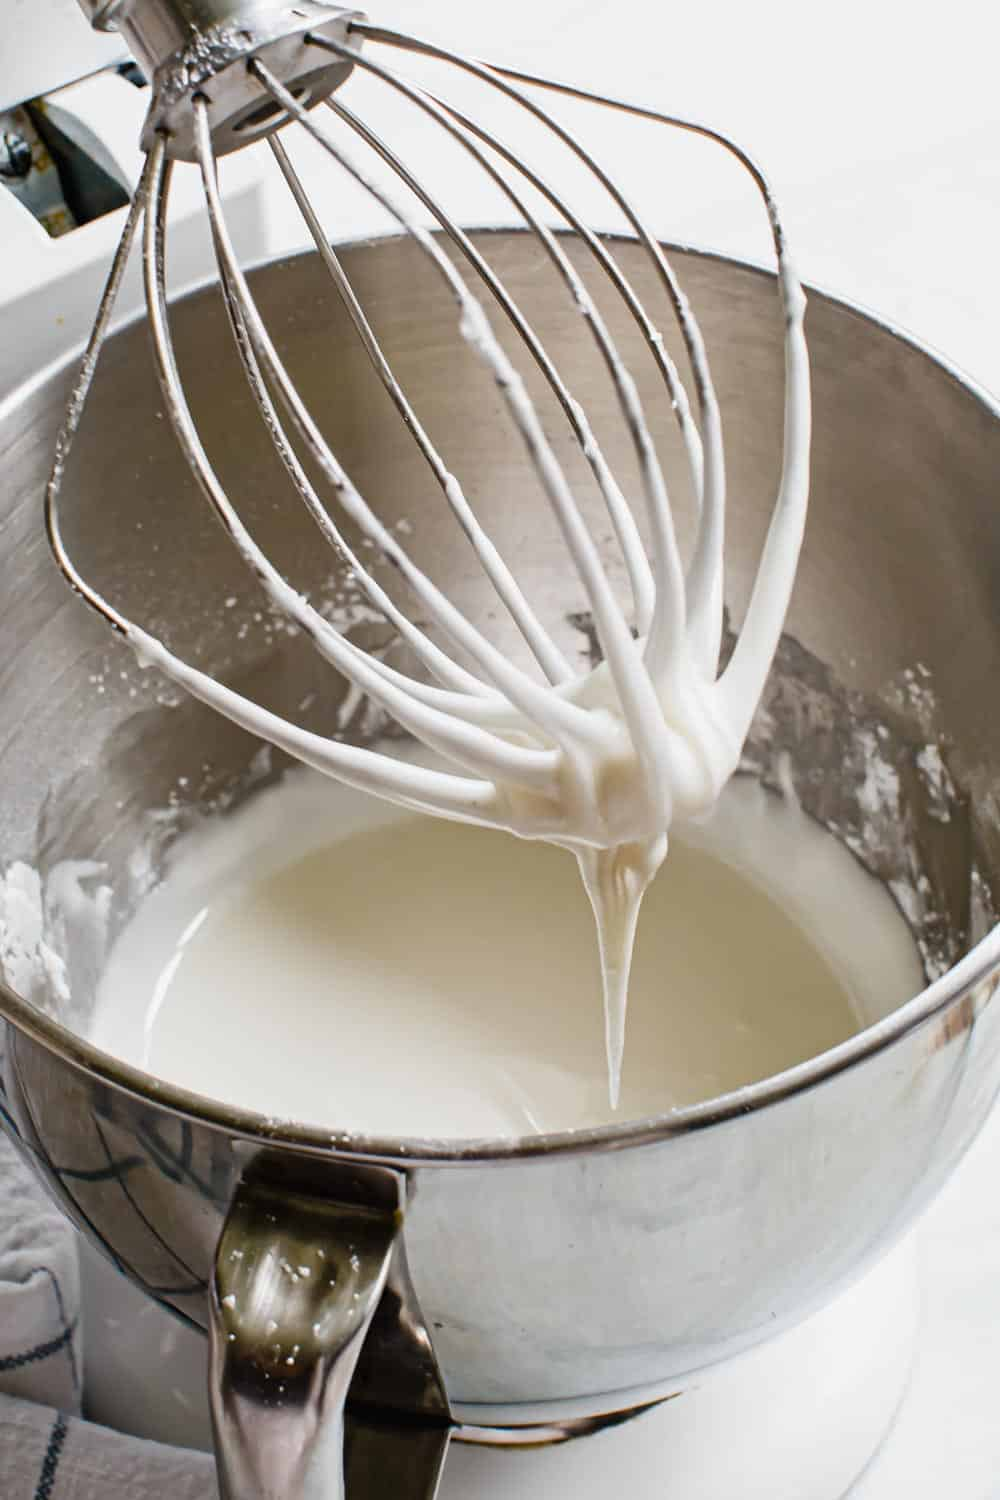 Royal icing in an electric mixing bowl.